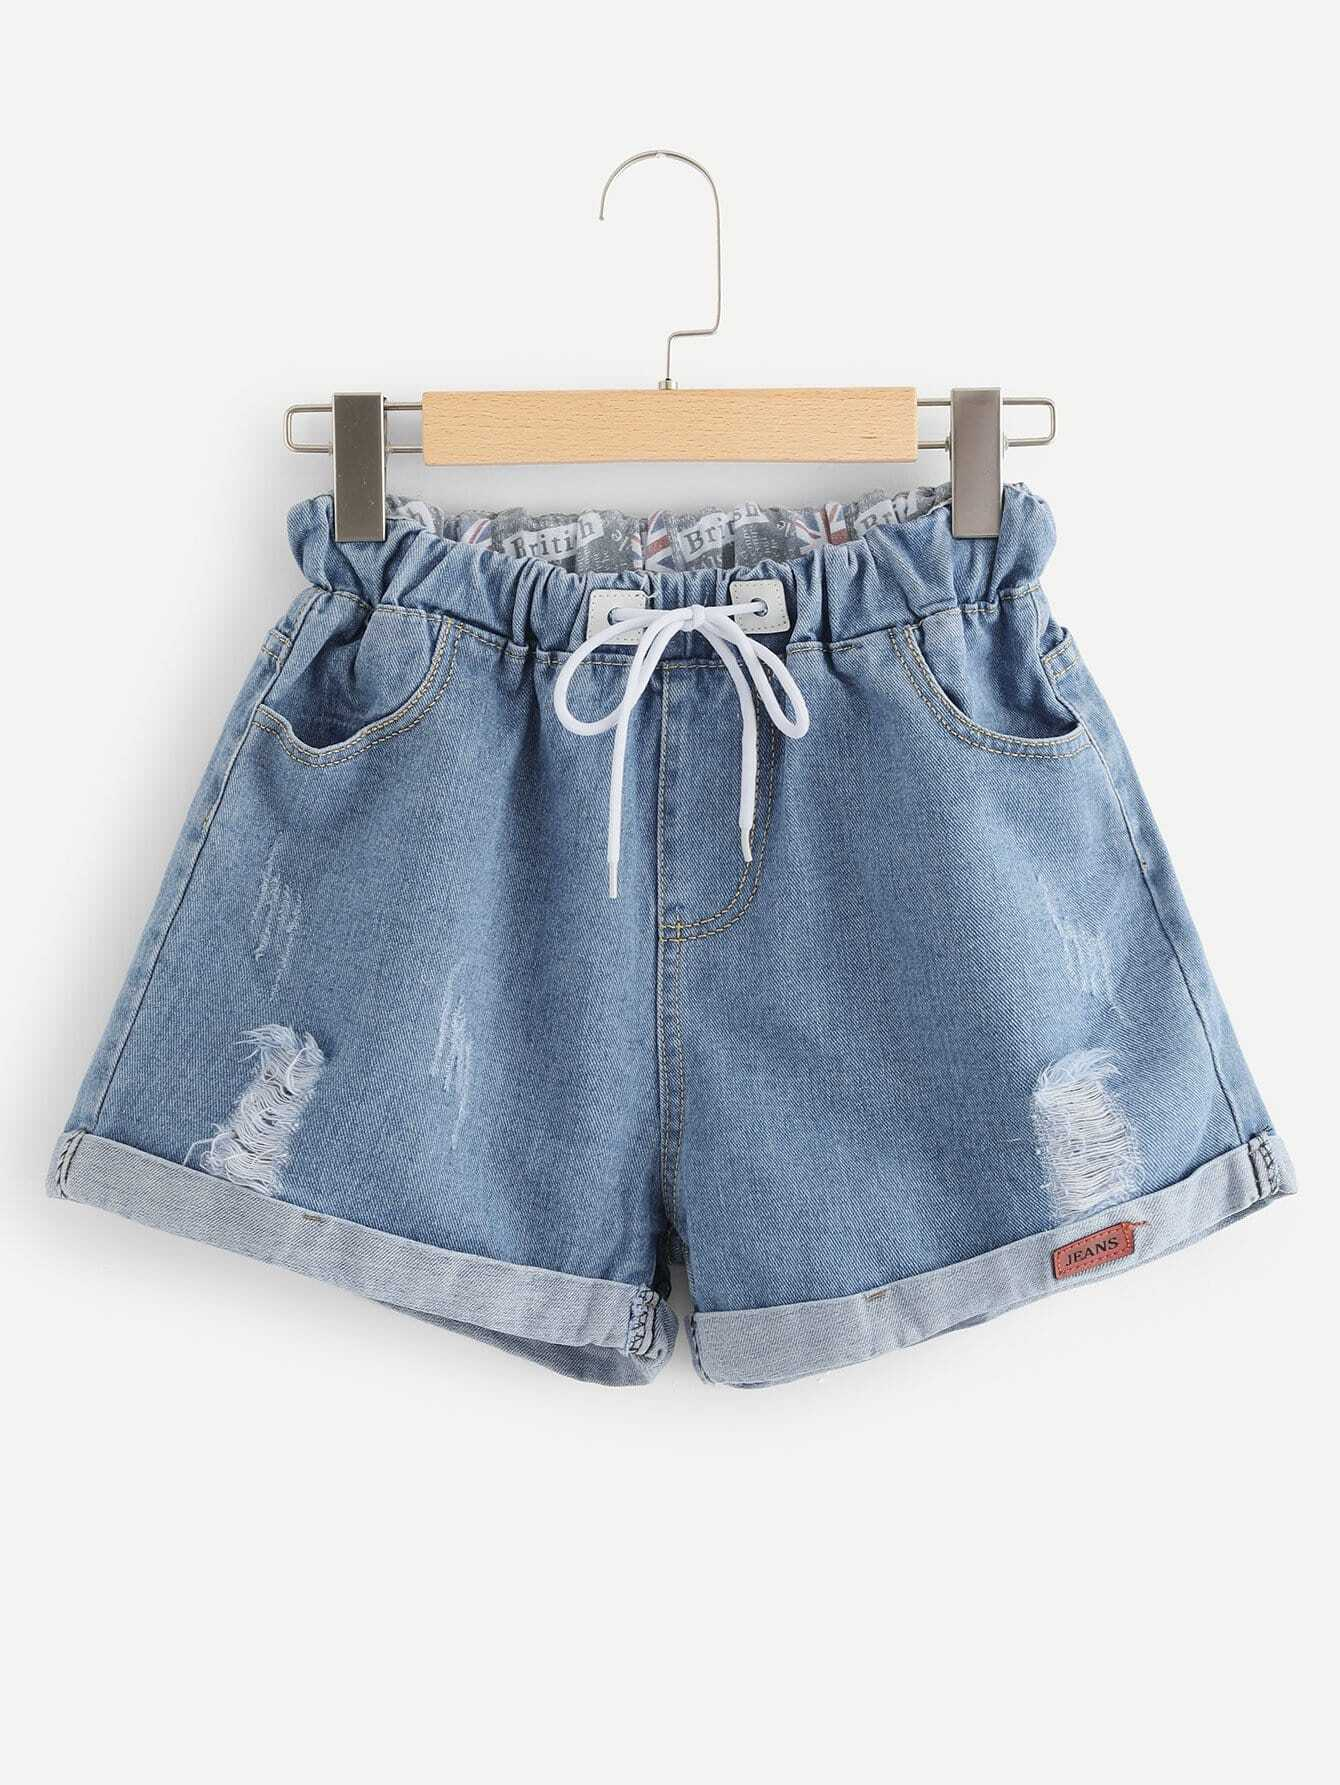 Roll Up Hem Drawstring Waist Denim Shorts цена 2017